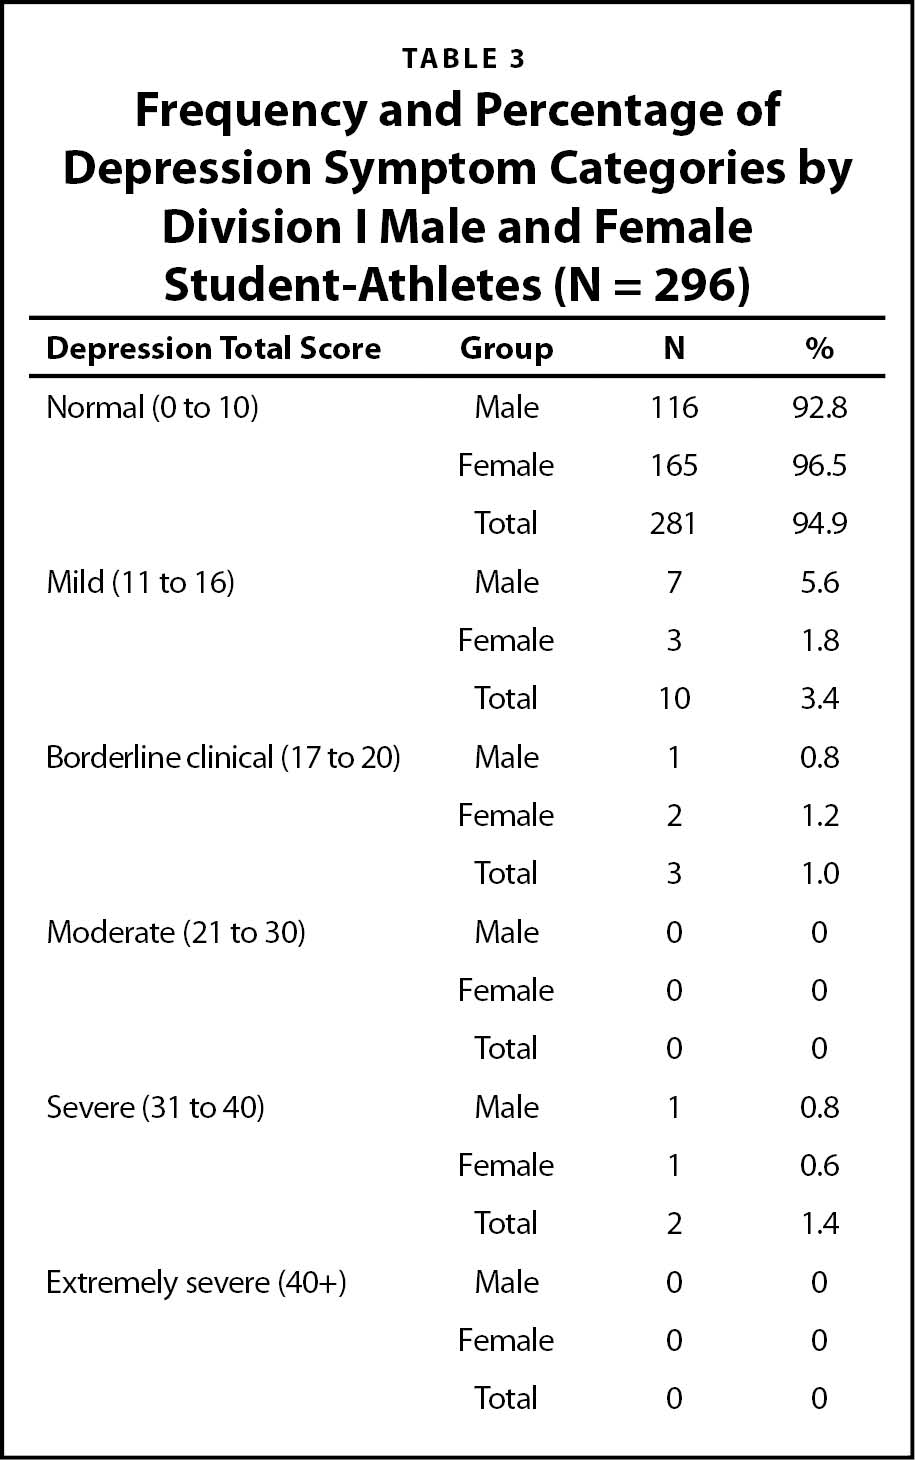 Frequency and Percentage of Depression Symptom Categories by Division I Male and Female Student-Athletes (N = 296)